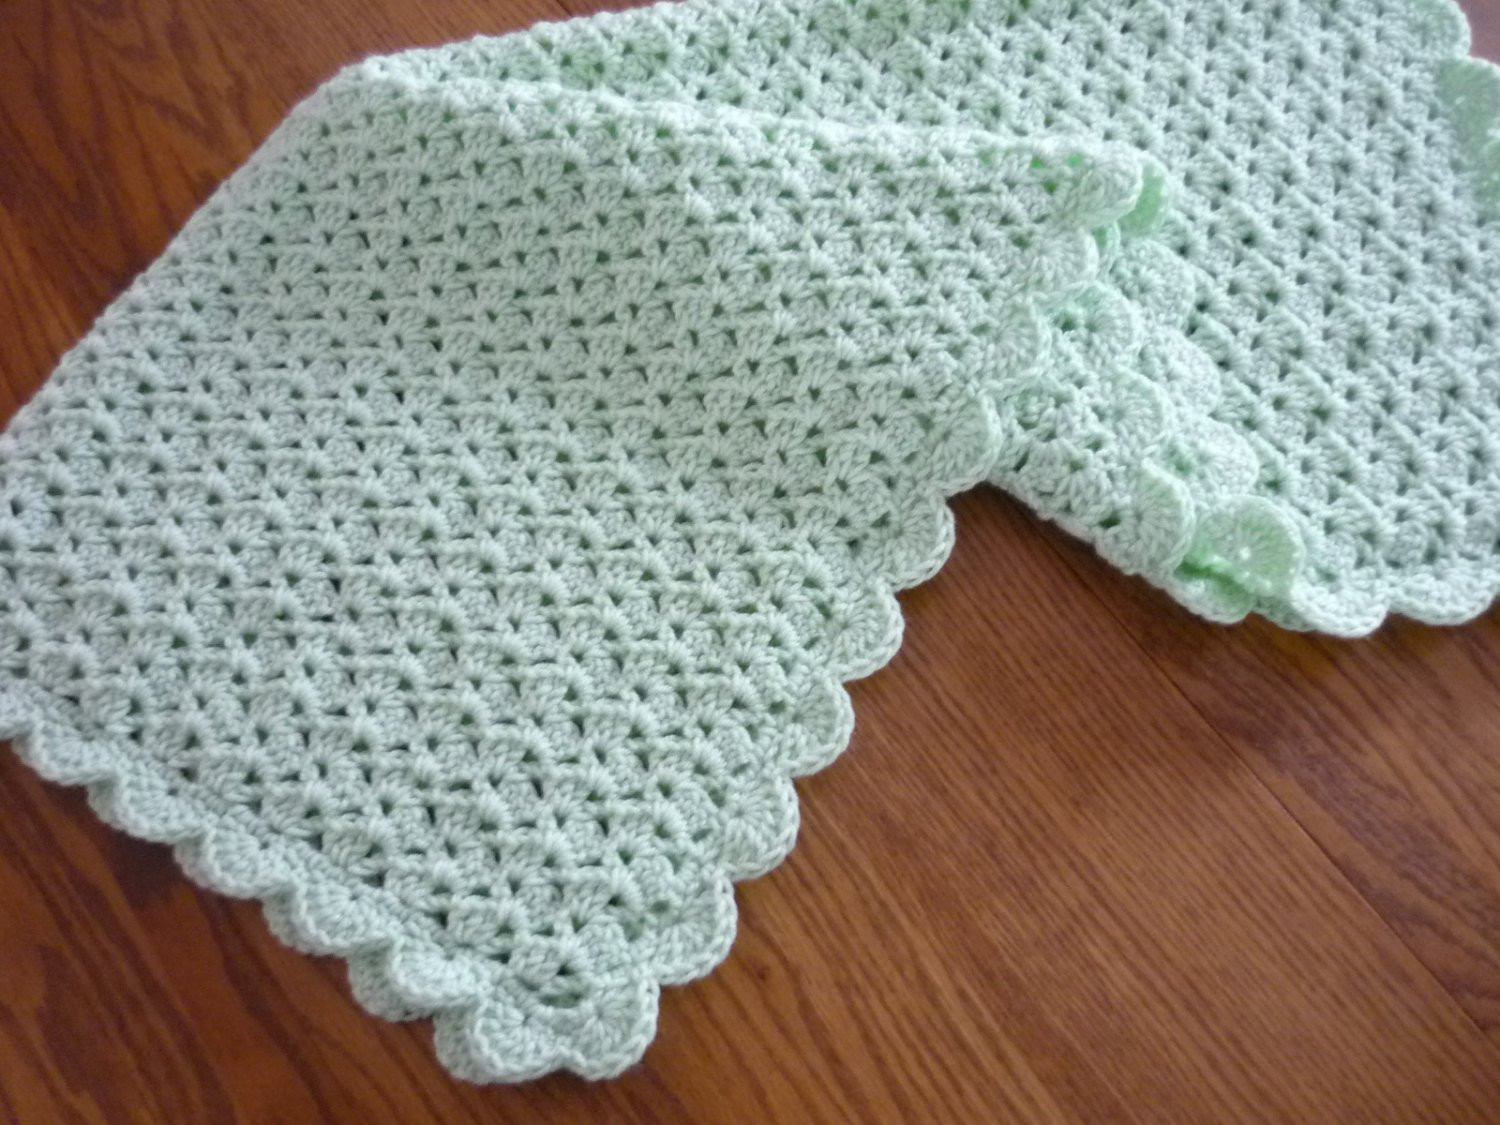 Luxury Crochet Baby Blanket Shell Stitch Crochet Crib Size Afghan Crochet Shell Baby Blanket Of Lovely 50 Ideas Crochet Shell Baby Blanket